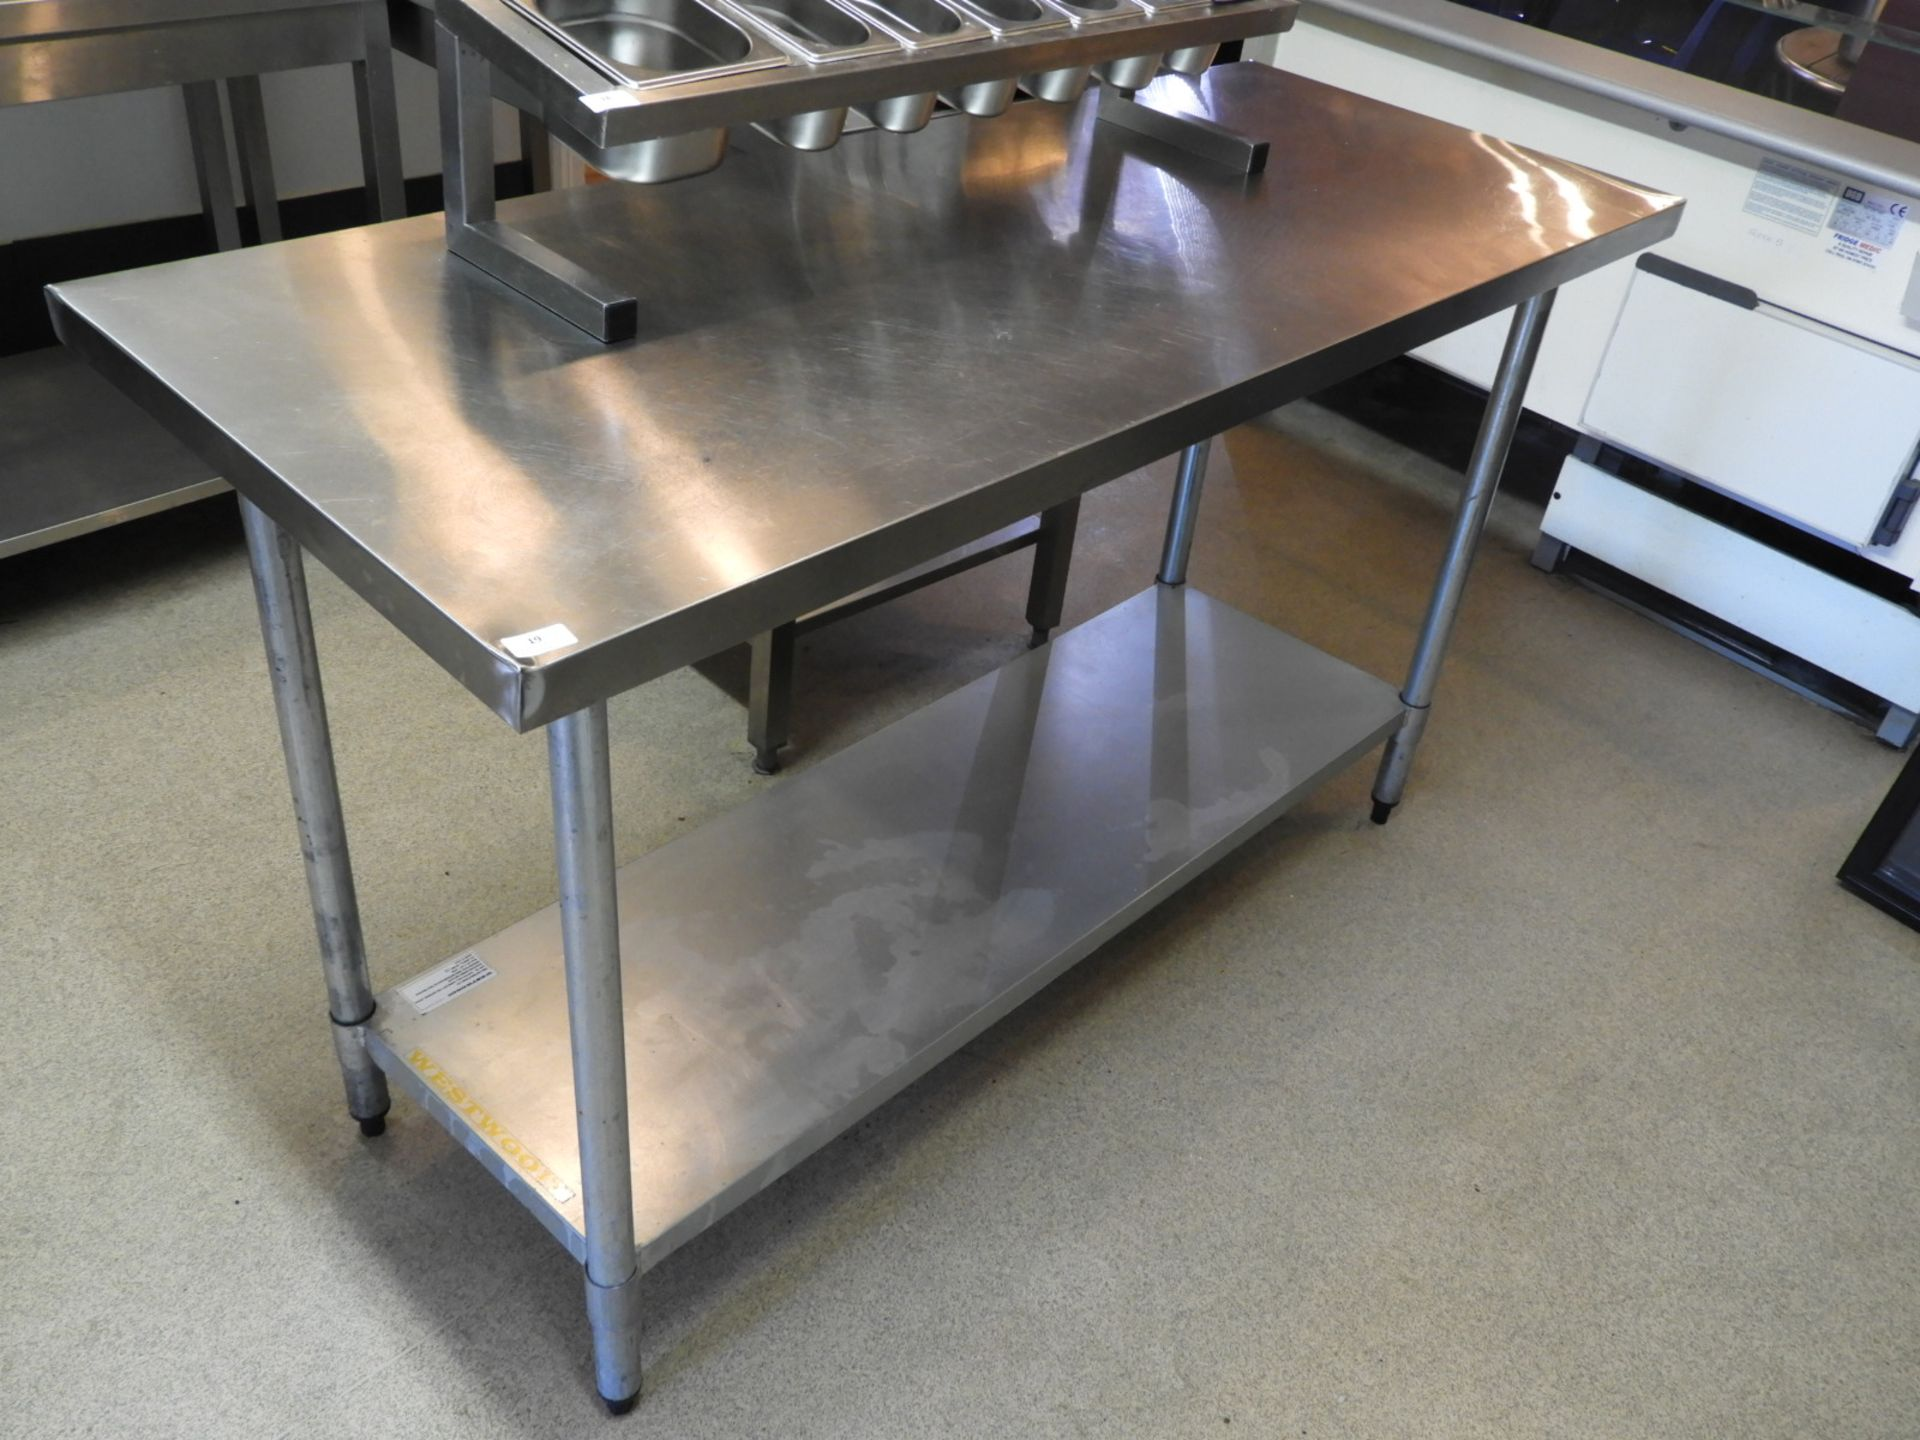 Lot 19 - Stainless Steel Island Preparation Unit with Under